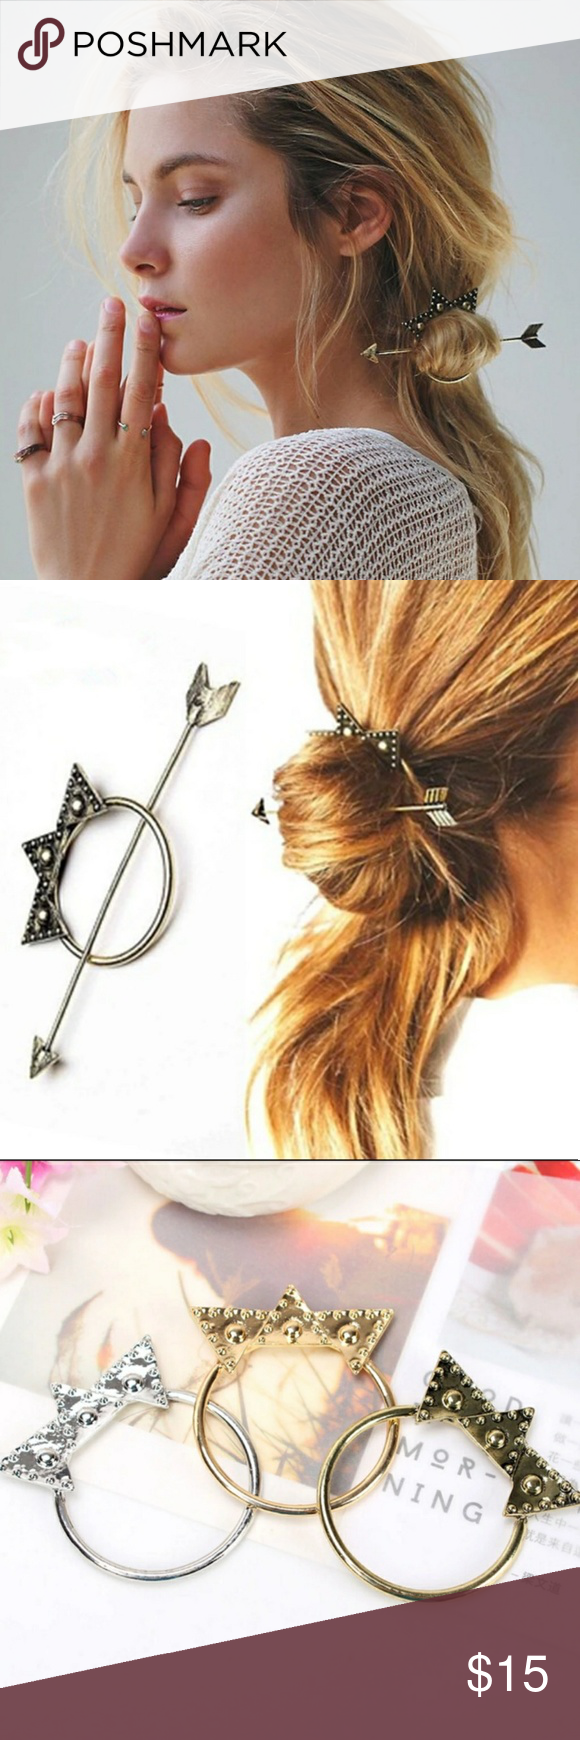 Arrow Hair Accessory x do leave a comment to be notified once in stock =] > coming soon > new > bundle & save > use offer button Accessories Hair Accessories